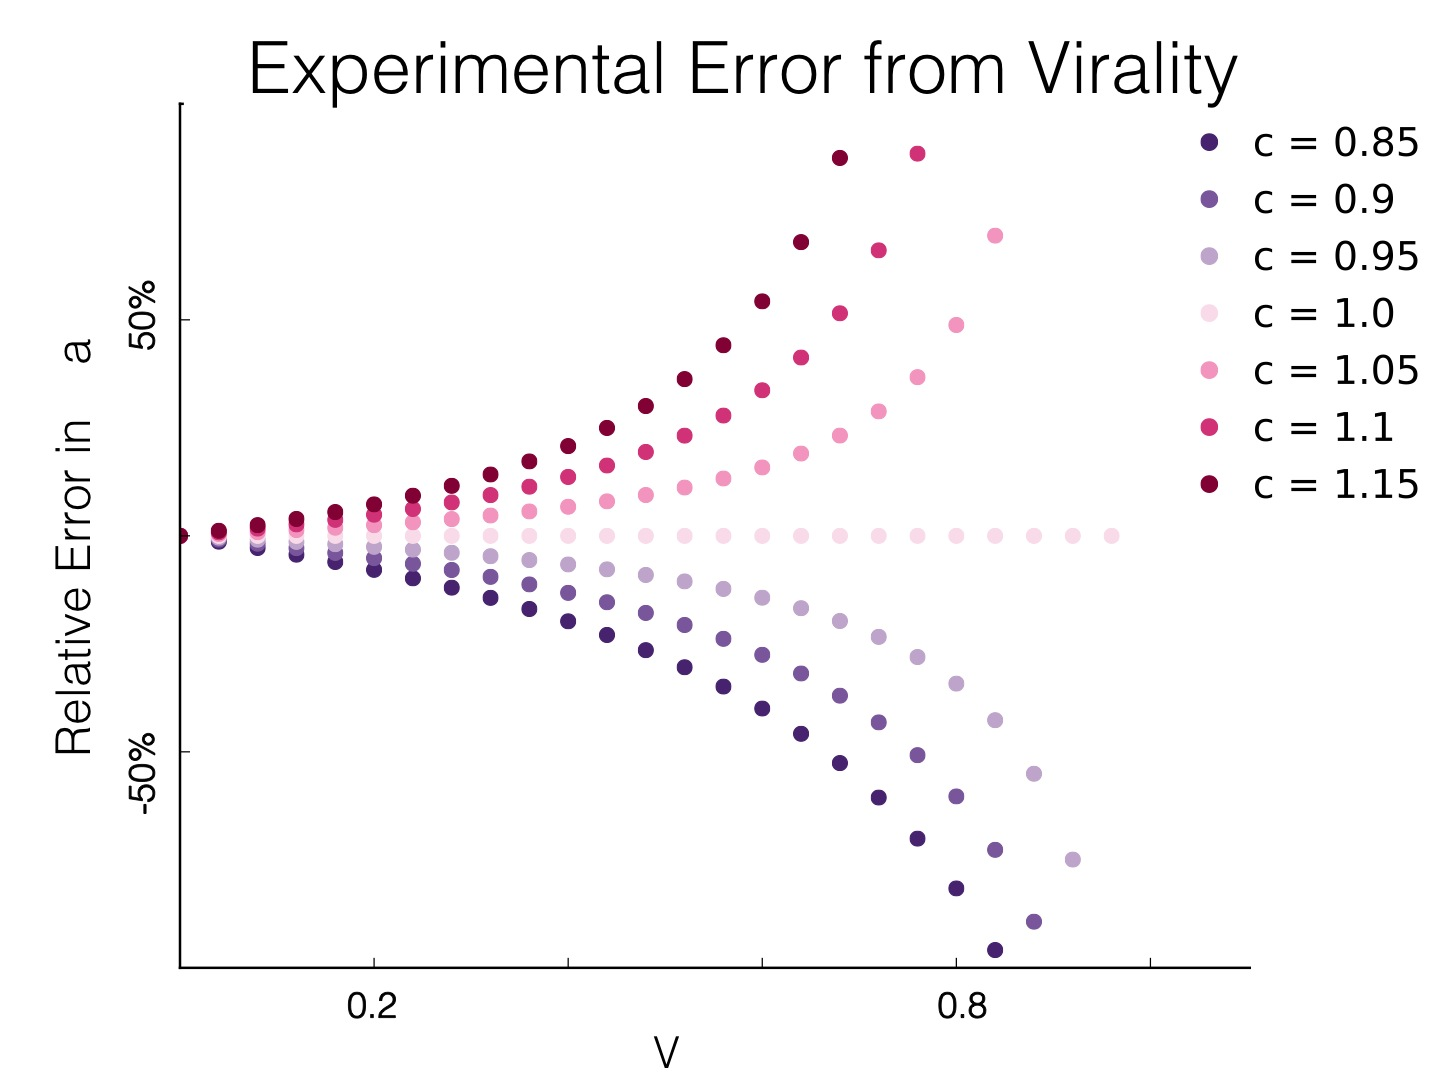 Experimental Error from Virality